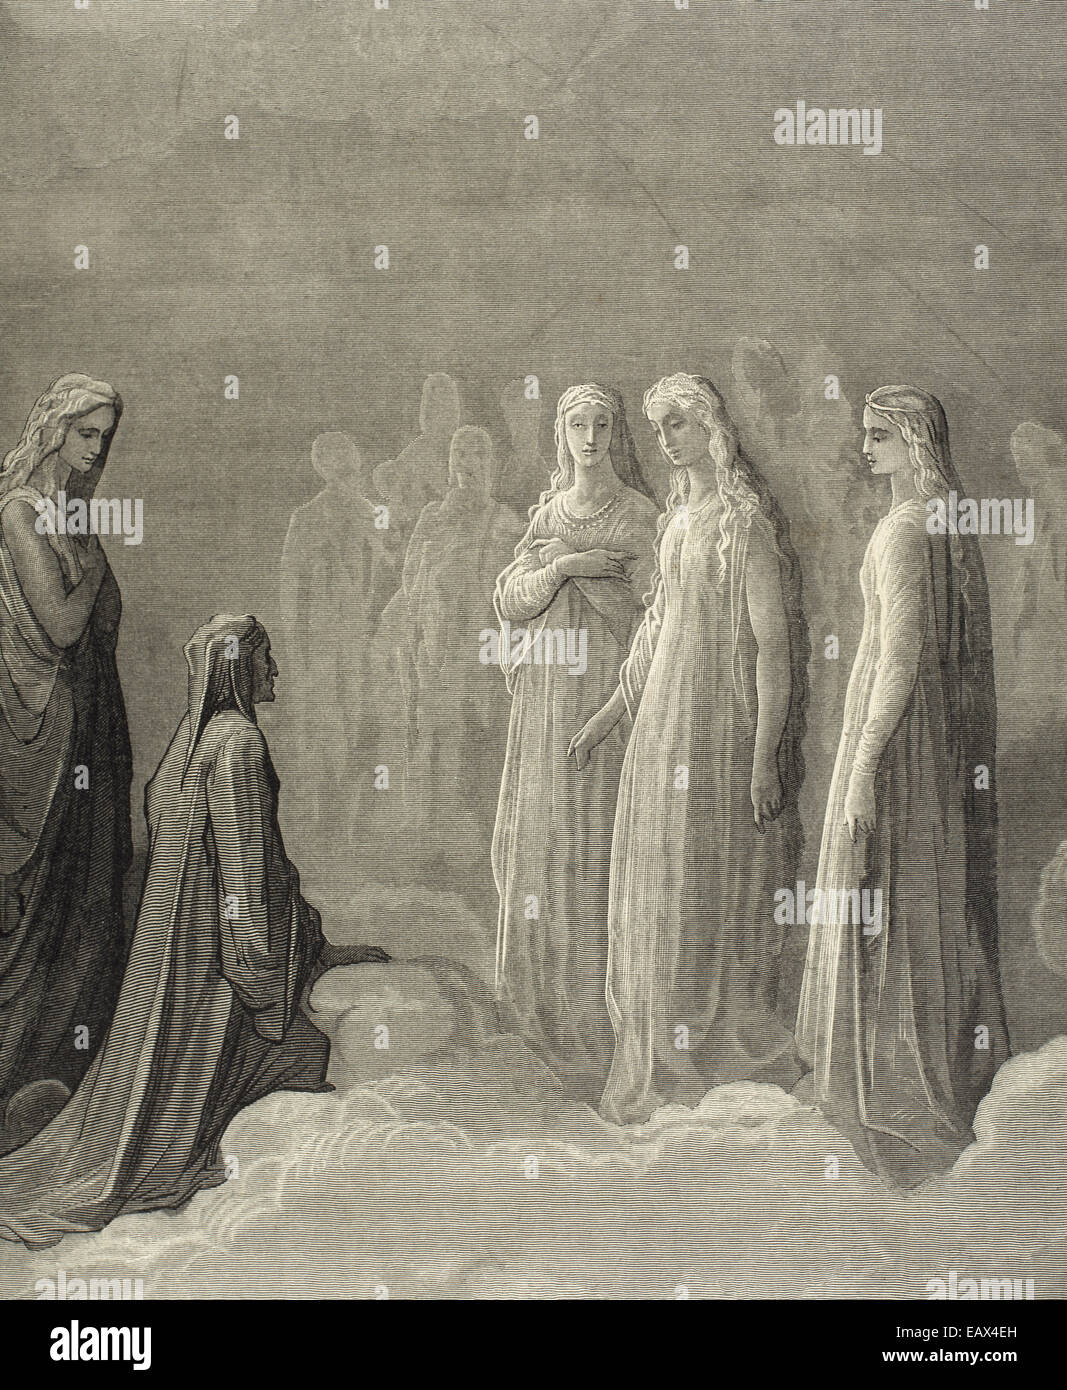 Divine Comedy by Dante Alighieri (1265-1321). Paradise. Canto III. Piccarda Donati and souls whose vows had been Stock Photo